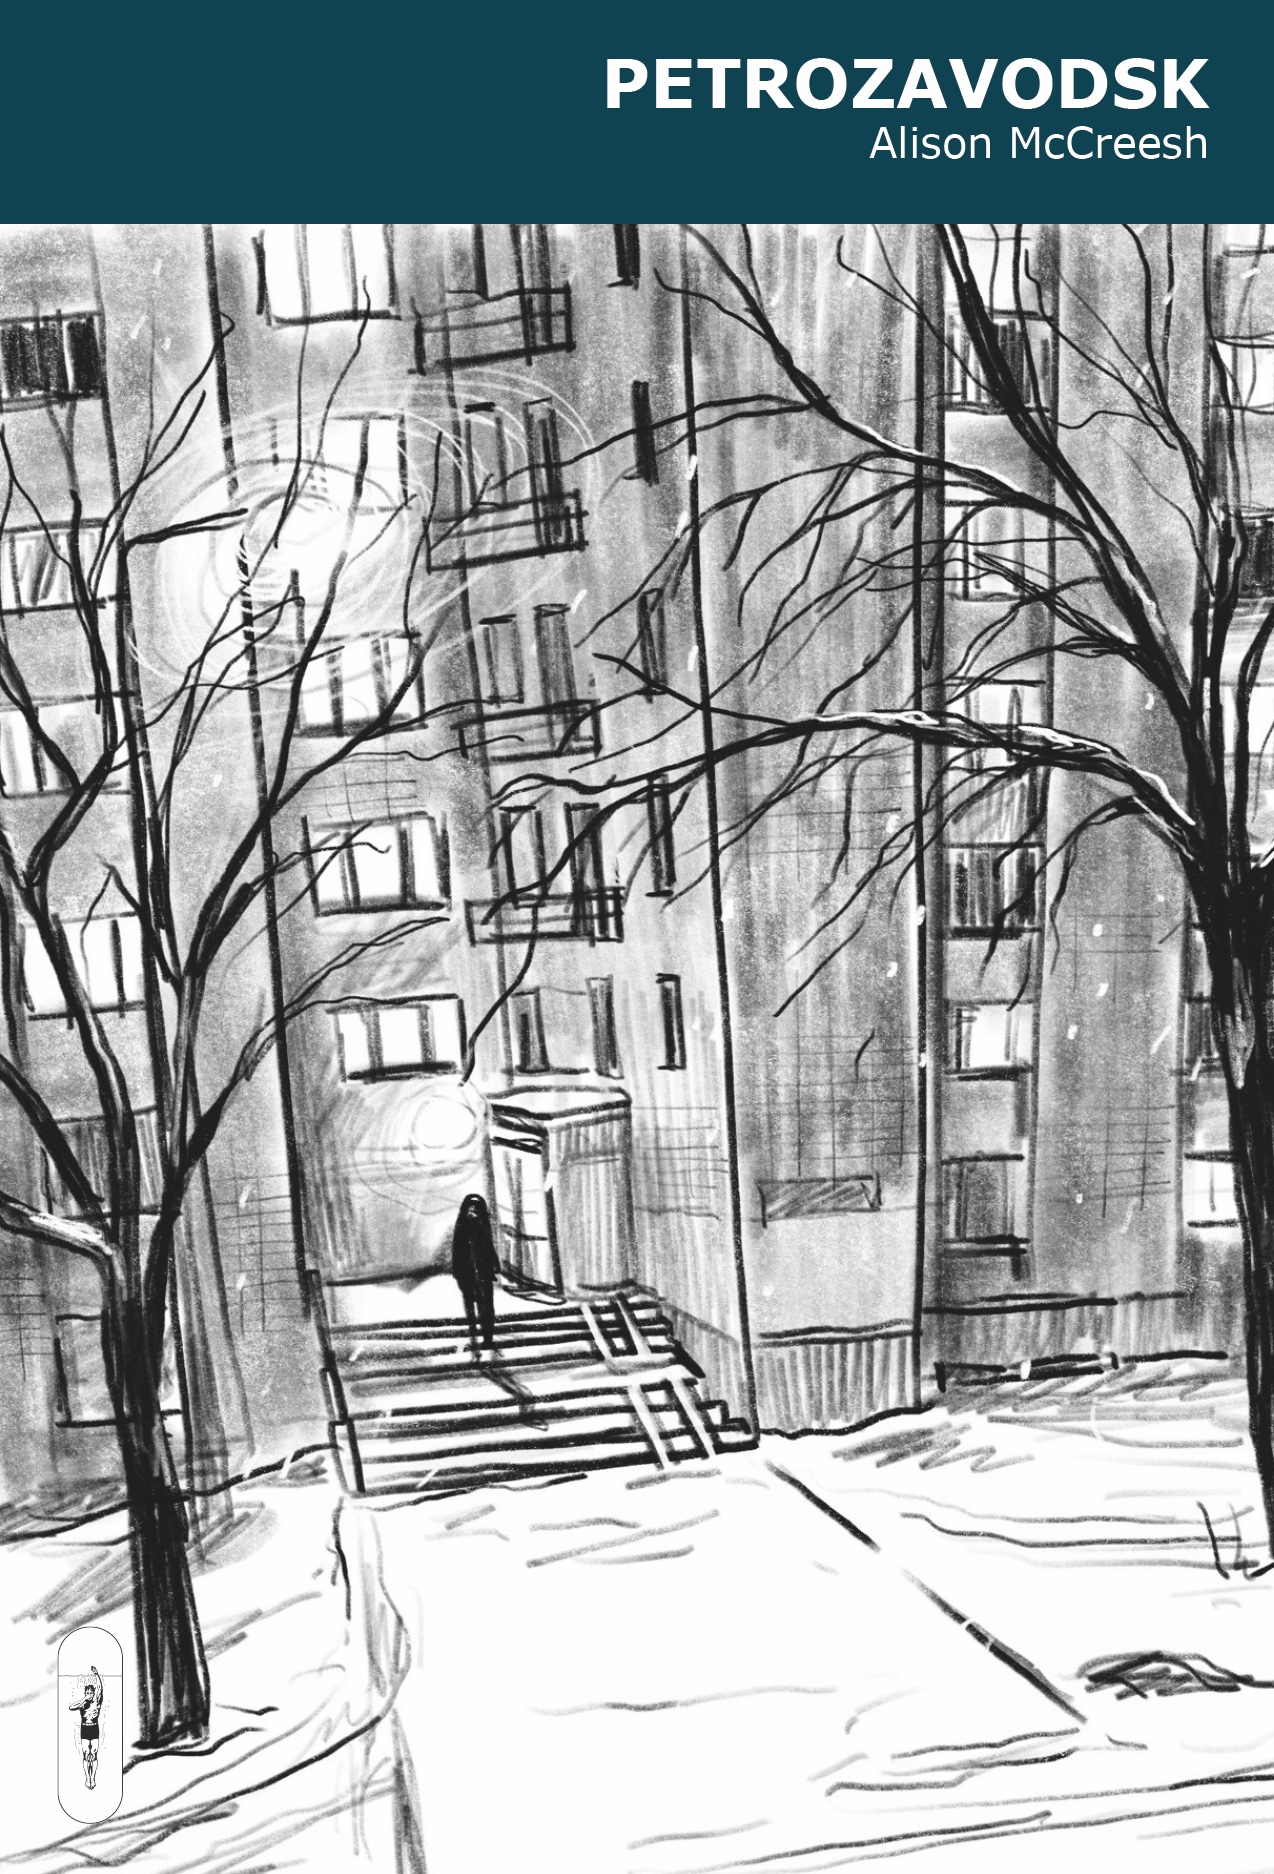 A silhouetted figure walks up the steps of a tall building with many windows. Tall, bare trees stand in the foreground. Text: Petrozavodsk by Alison McCreesh